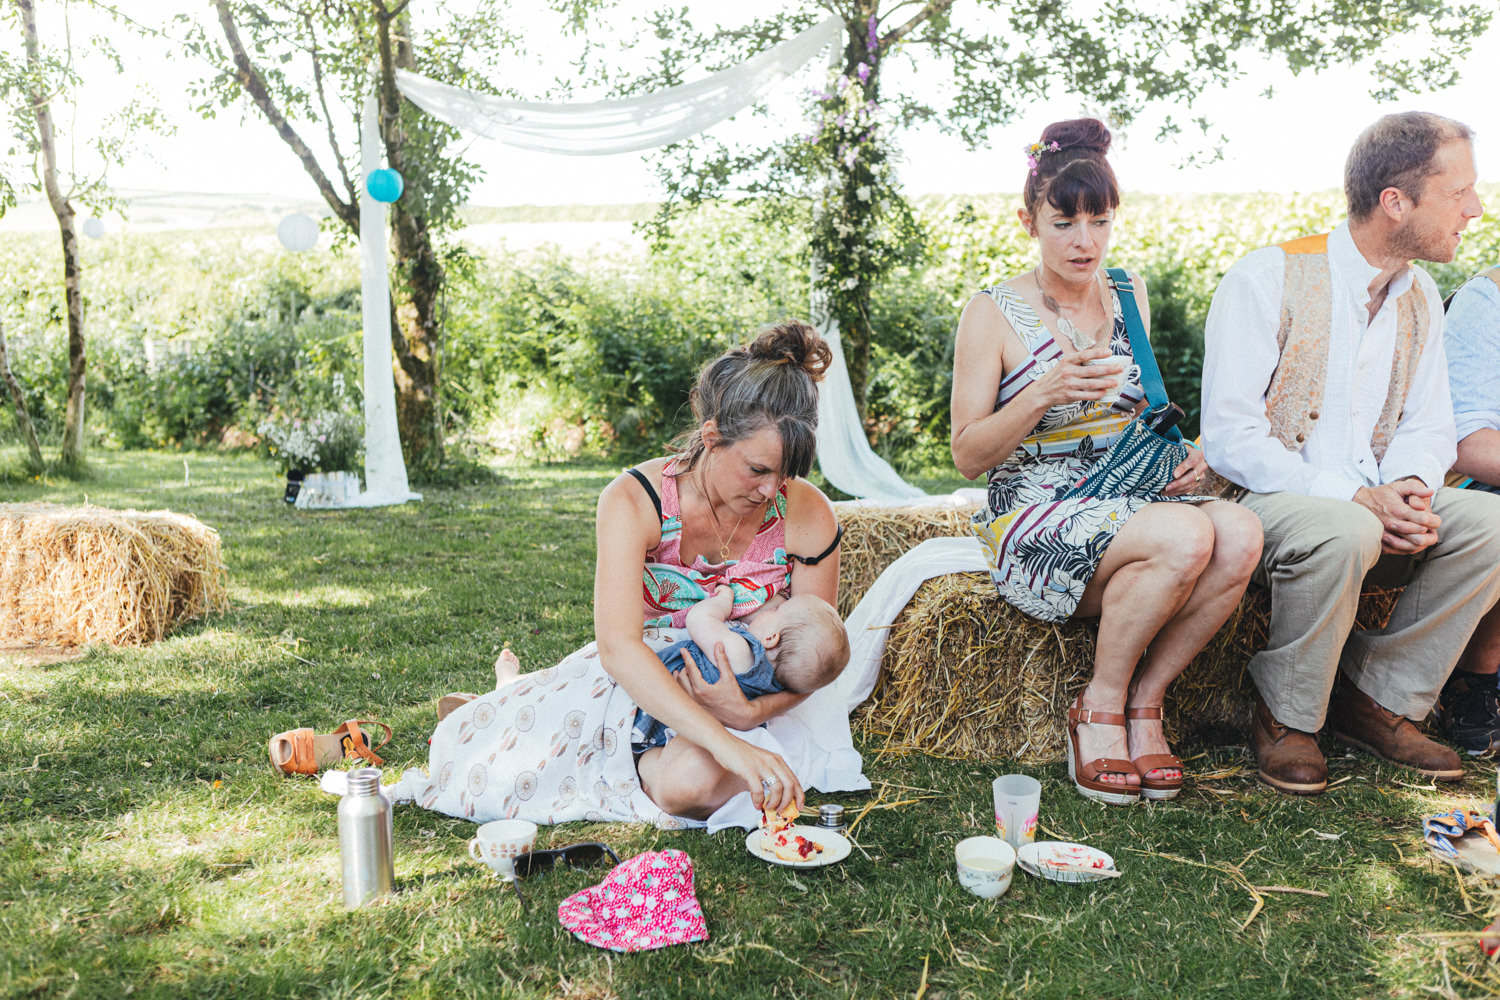 breastfeeding wedding guest, breastfeeding mum, Holsome Park Wedding Photography, festival wedding, wedding guests, outdoor wedding, summer wedding